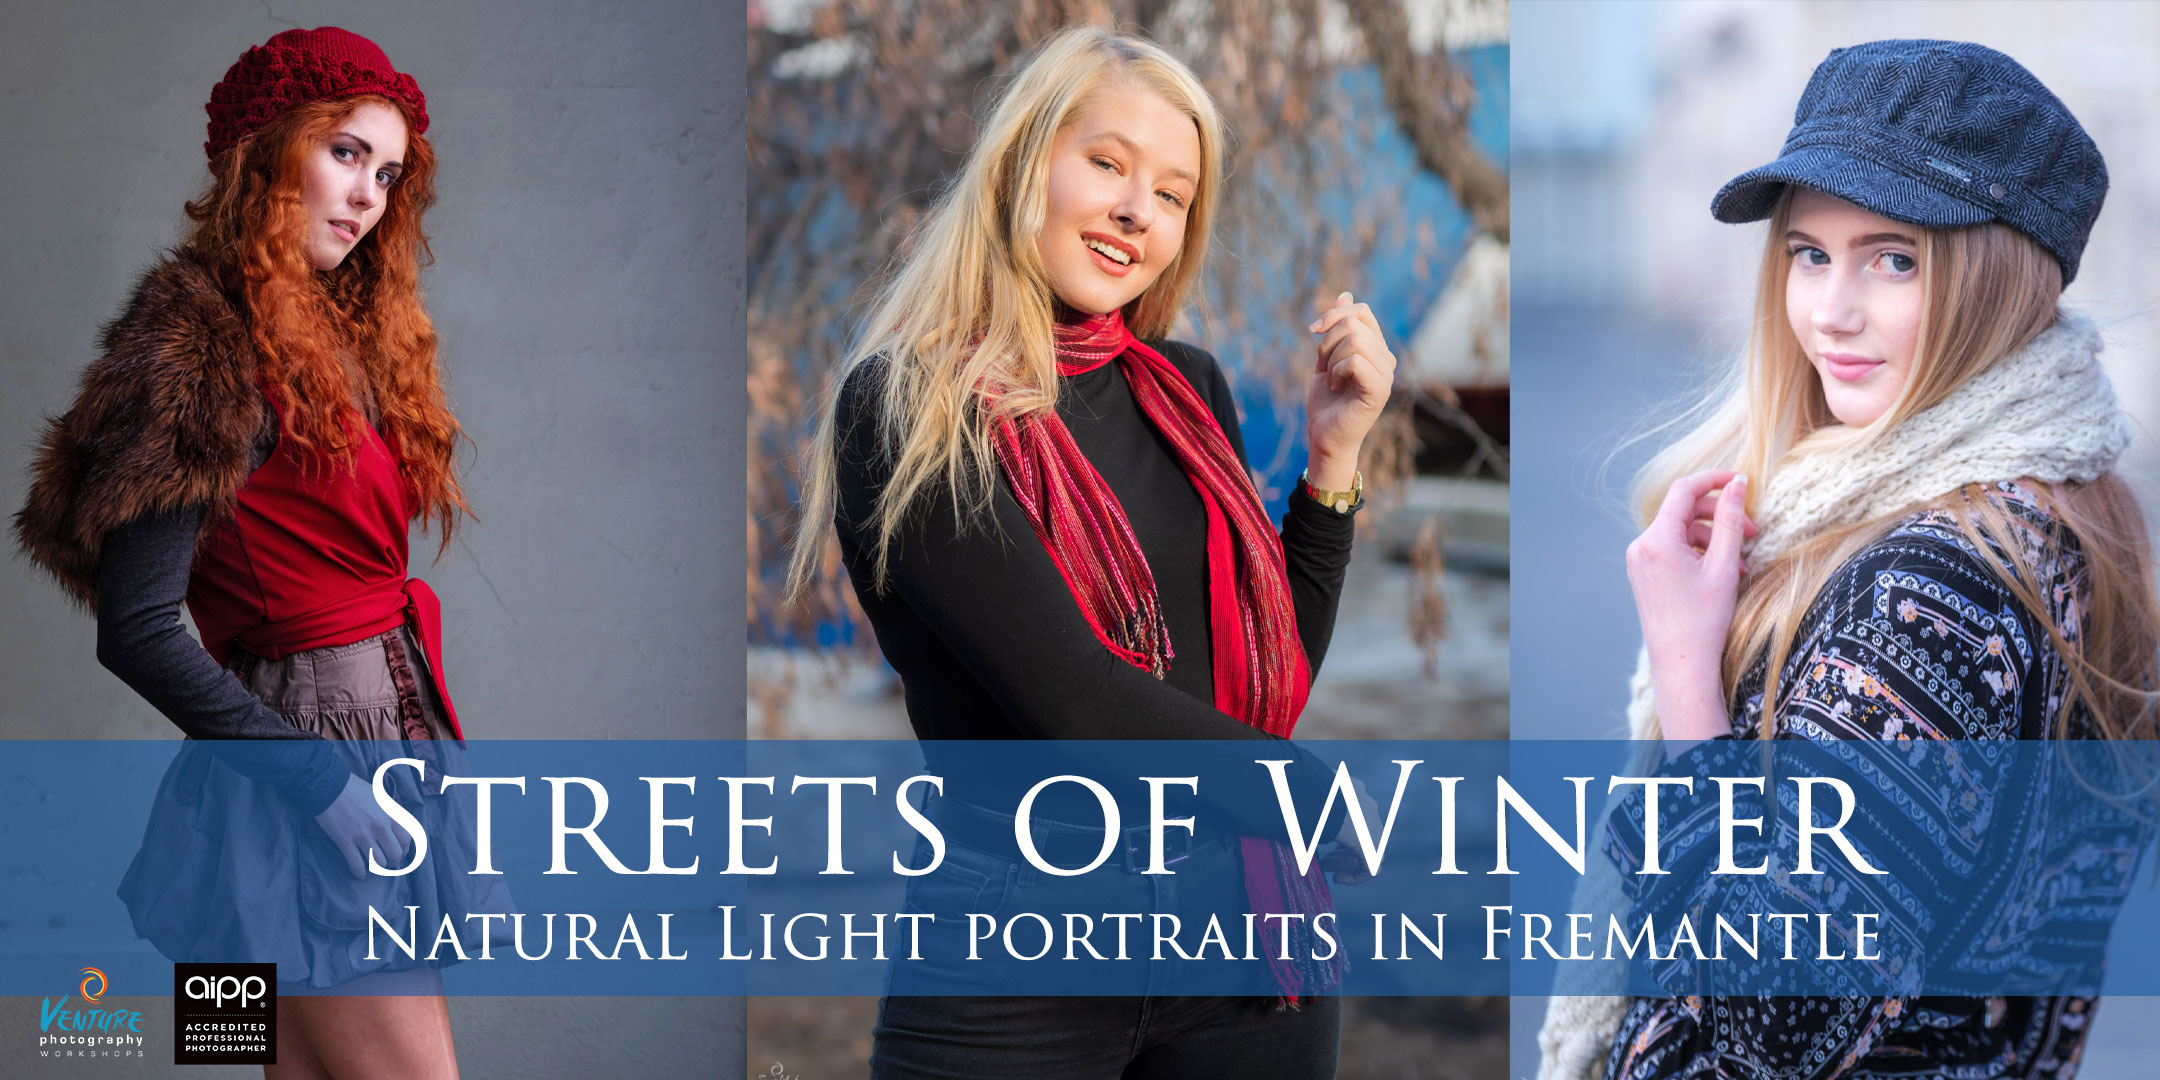 Streets of Winter: Natural Light Portraits in Fremantle